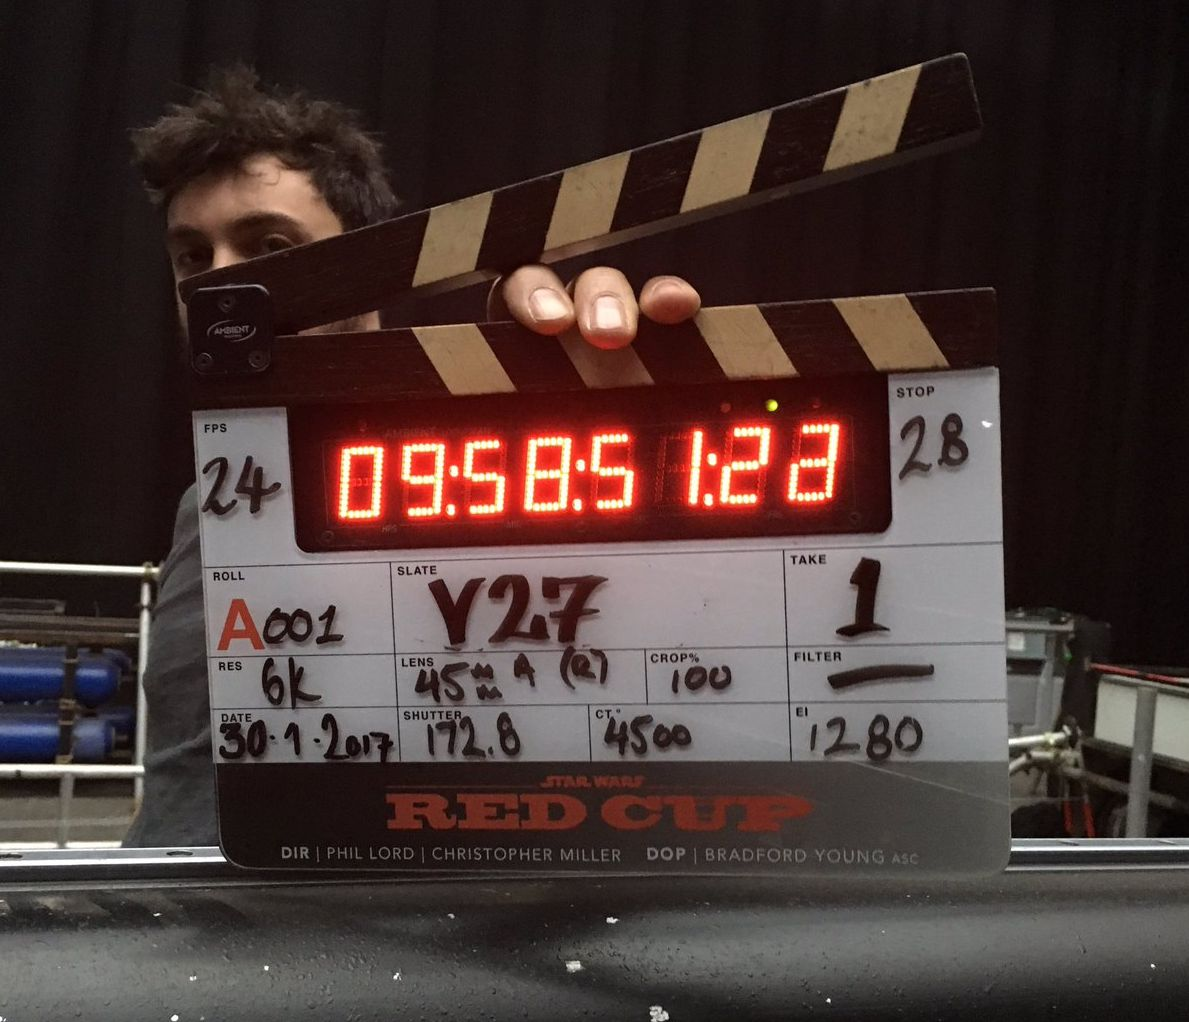 First set photo from the Han Solo Star Wars film